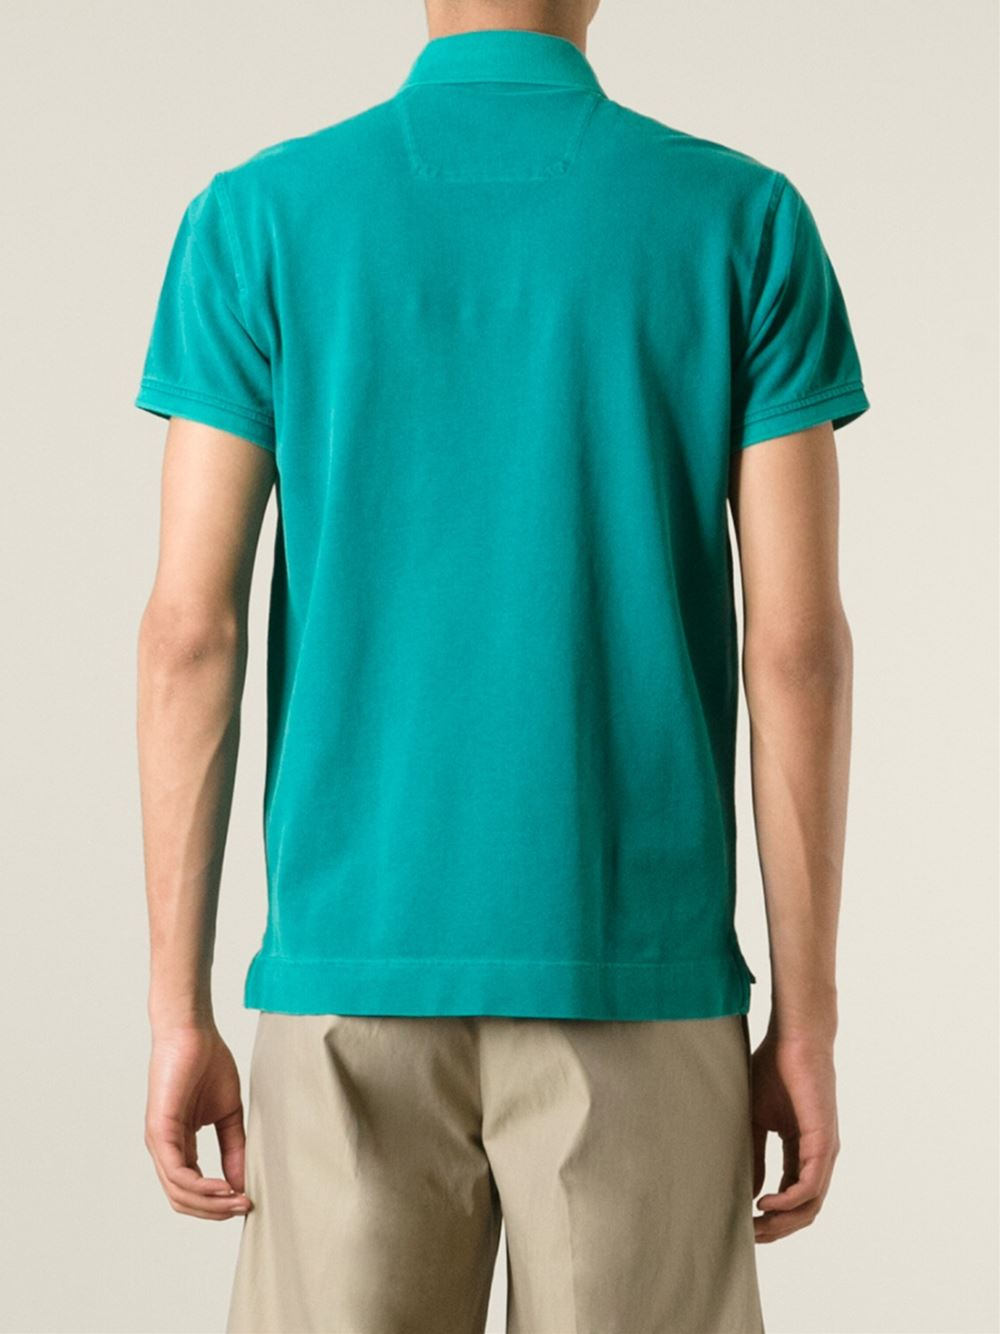 Z zegna pocket polo shirt in green for men lyst for Zegna polo shirts sale